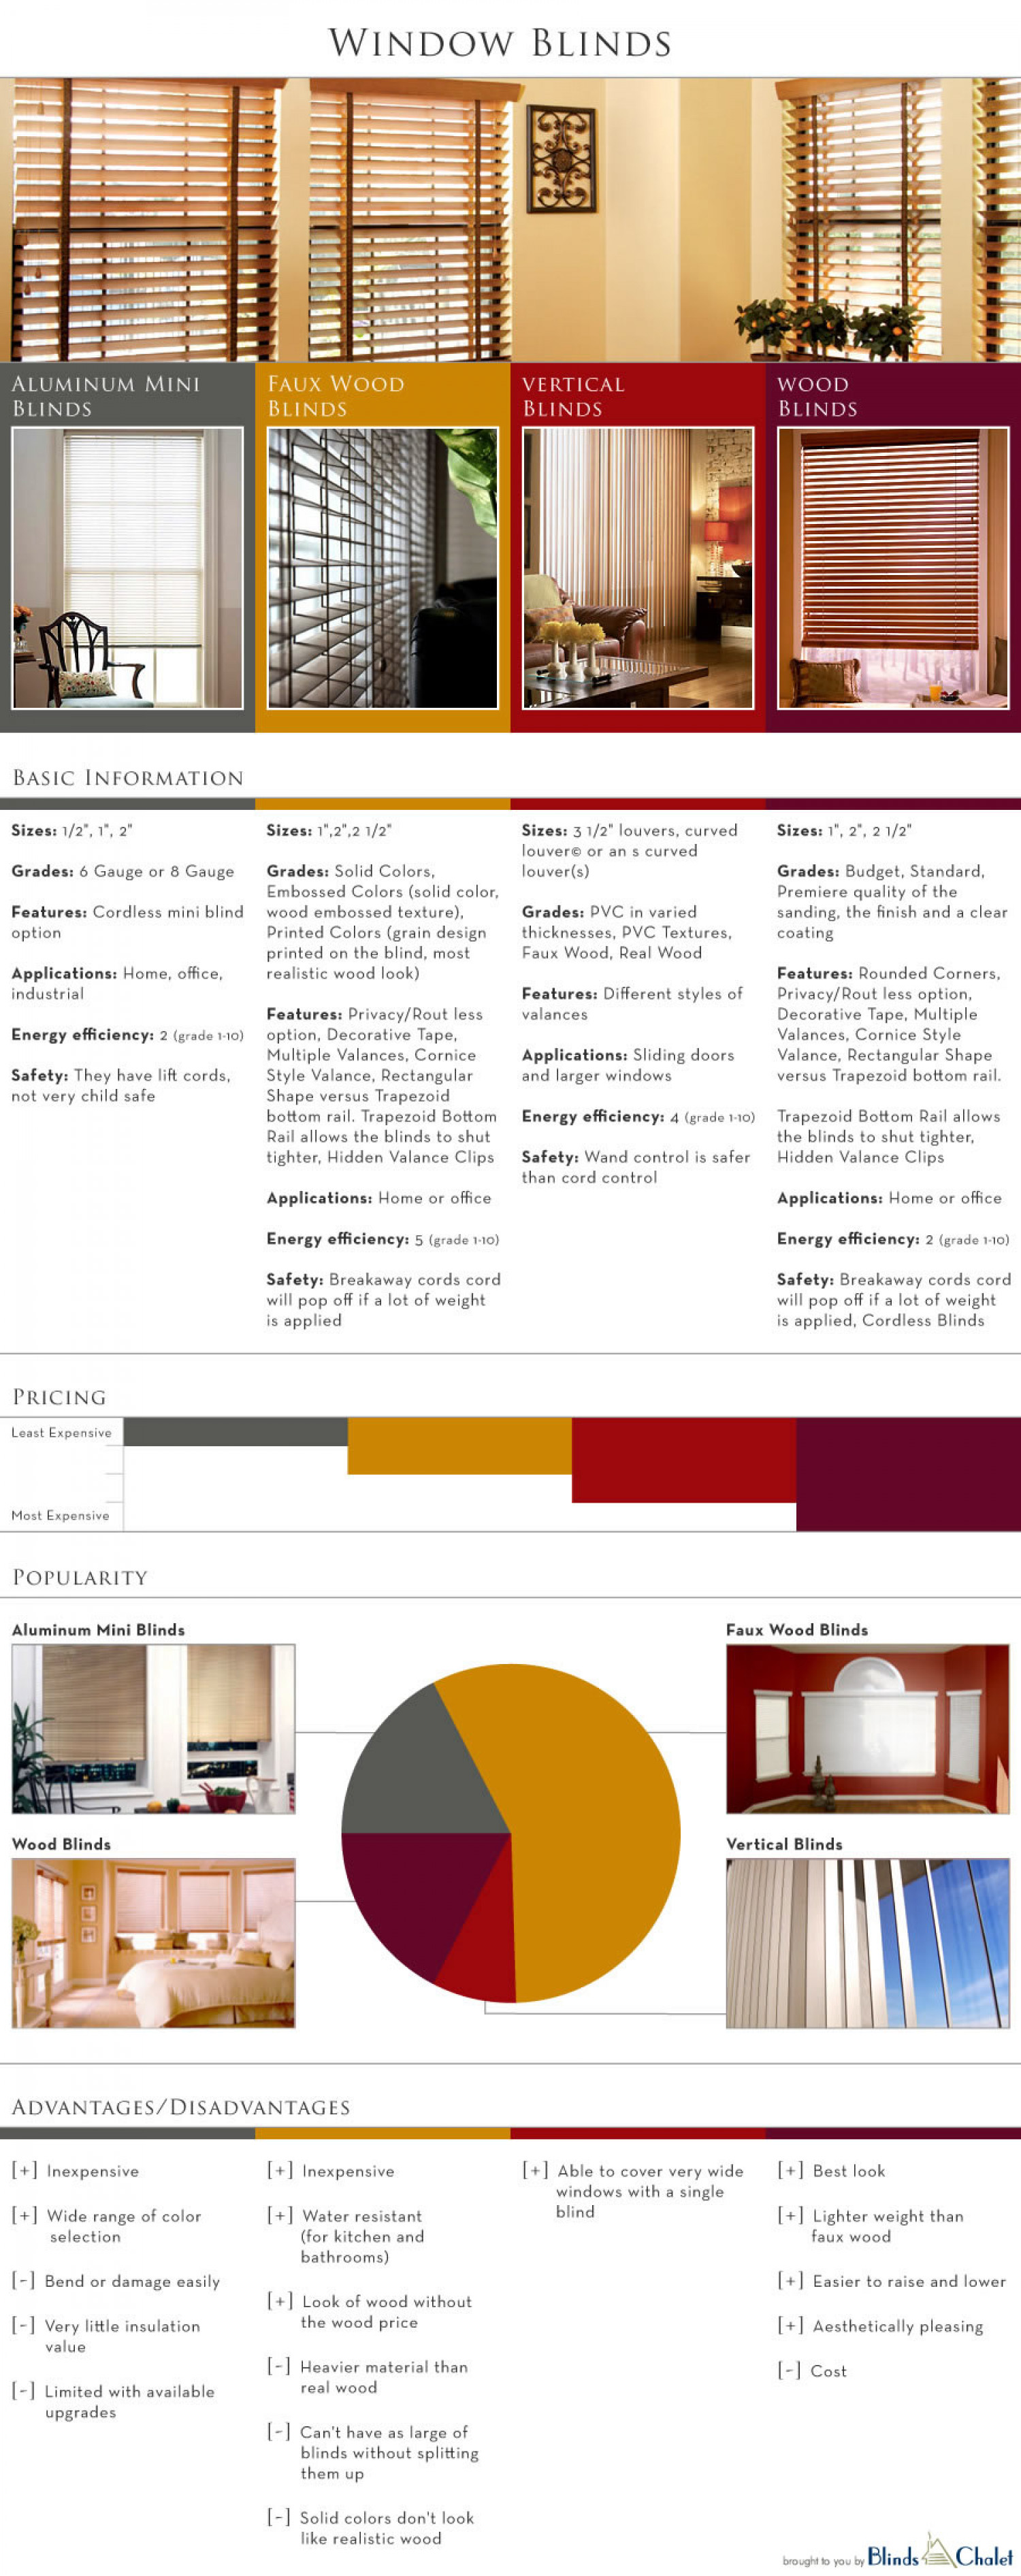 Window Blinds Infographic Infographic